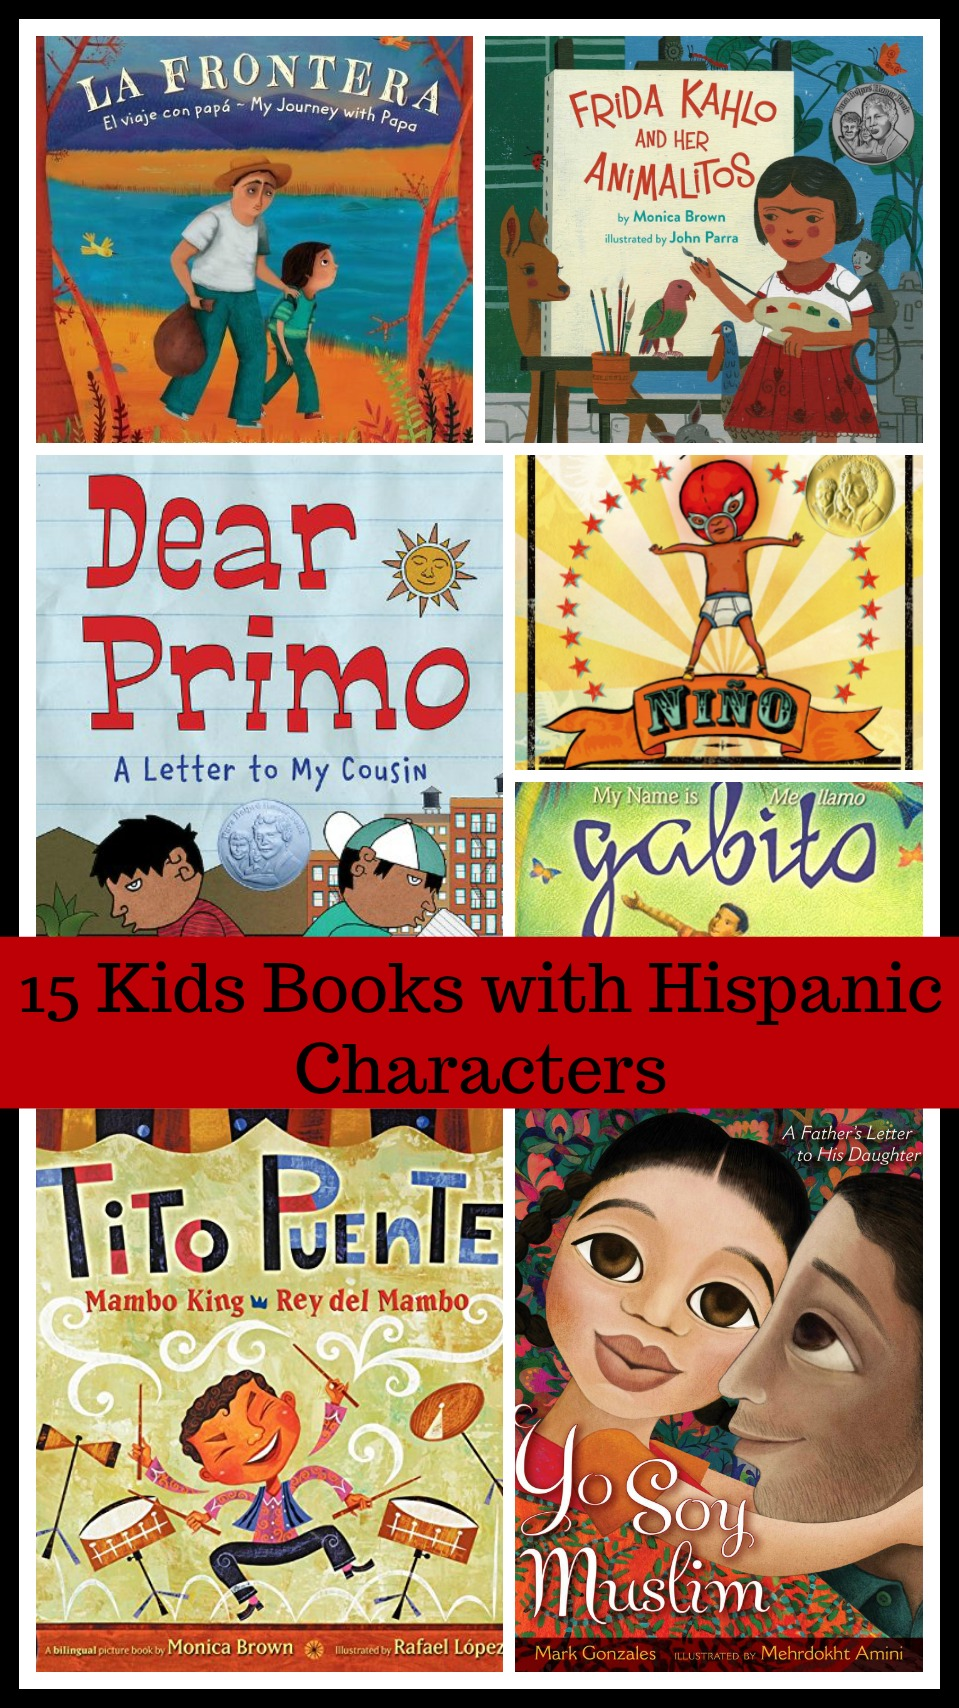 Kids Books with Hispanic Characters